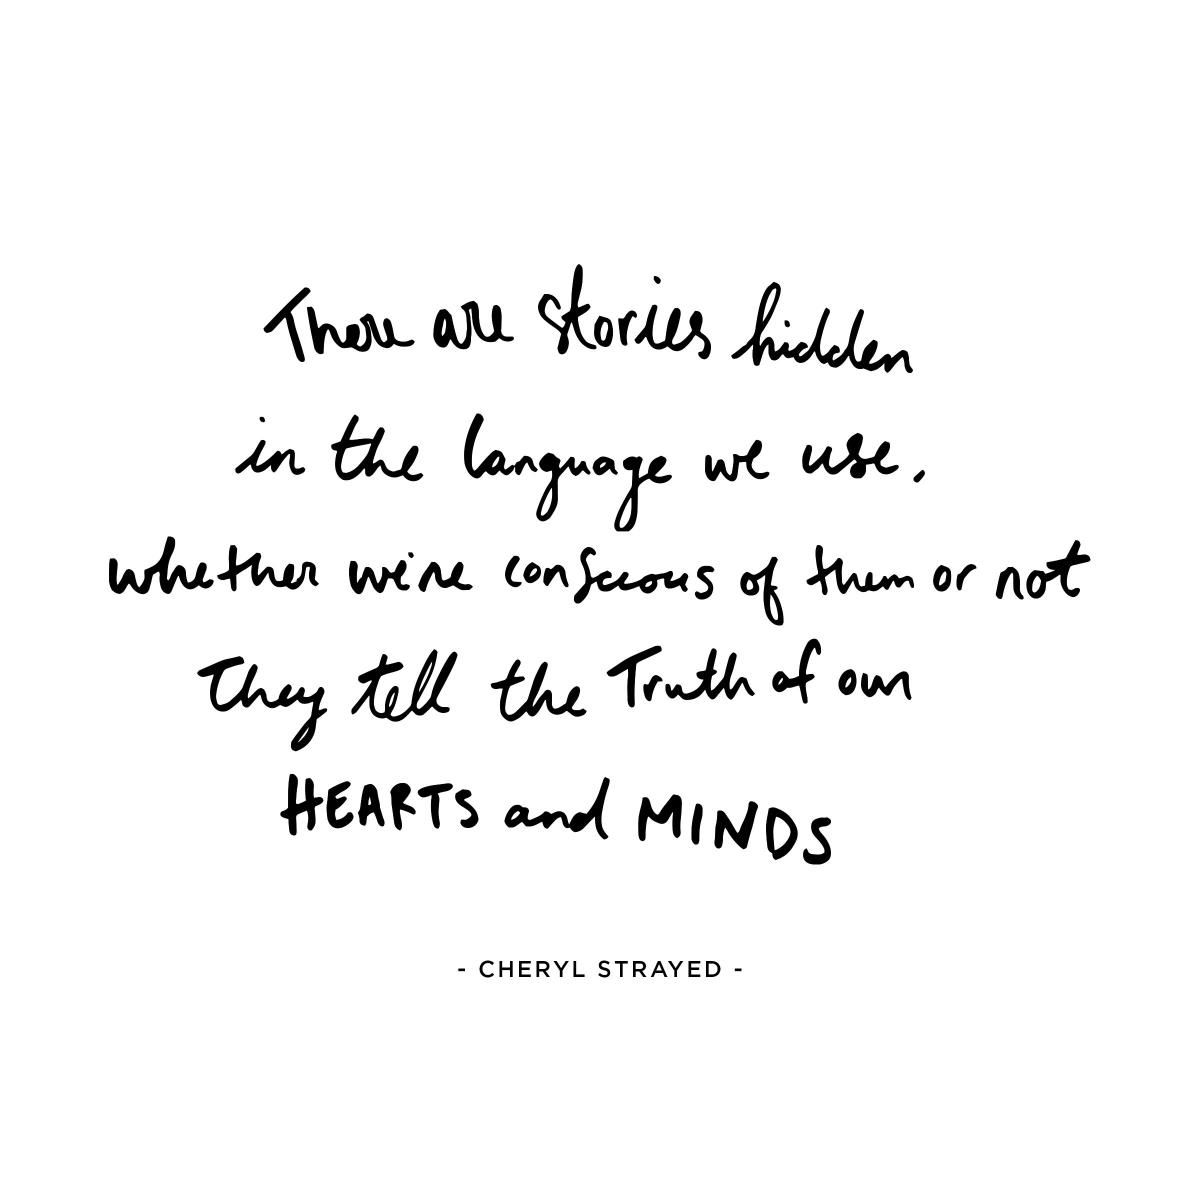 Conscious Quotes There Are Stories Hidden In The Language We Use Whether We're